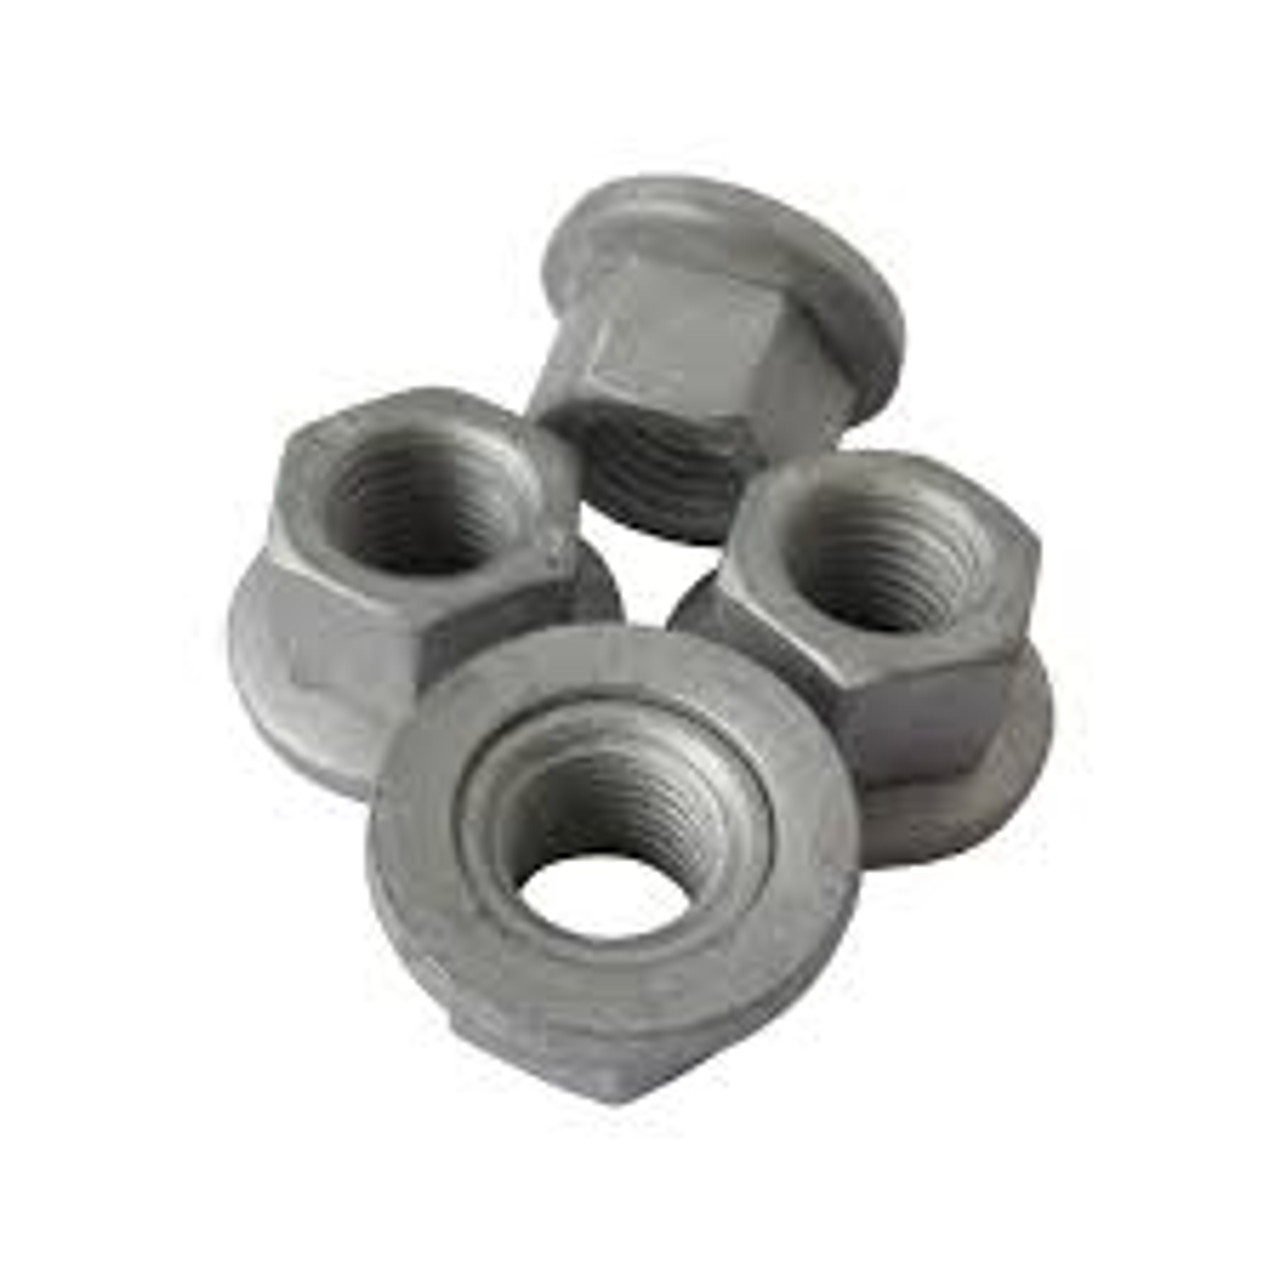 """Free Spinning Washer Nut 1/4"""" - 20 Thread Washer O.D. : 7/8"""" Hex Size: 7/16"""" OEM# 45334, 6023204, 6025004 Phosphate 50 Per Box Click Next Image For Nut Size Chart"""